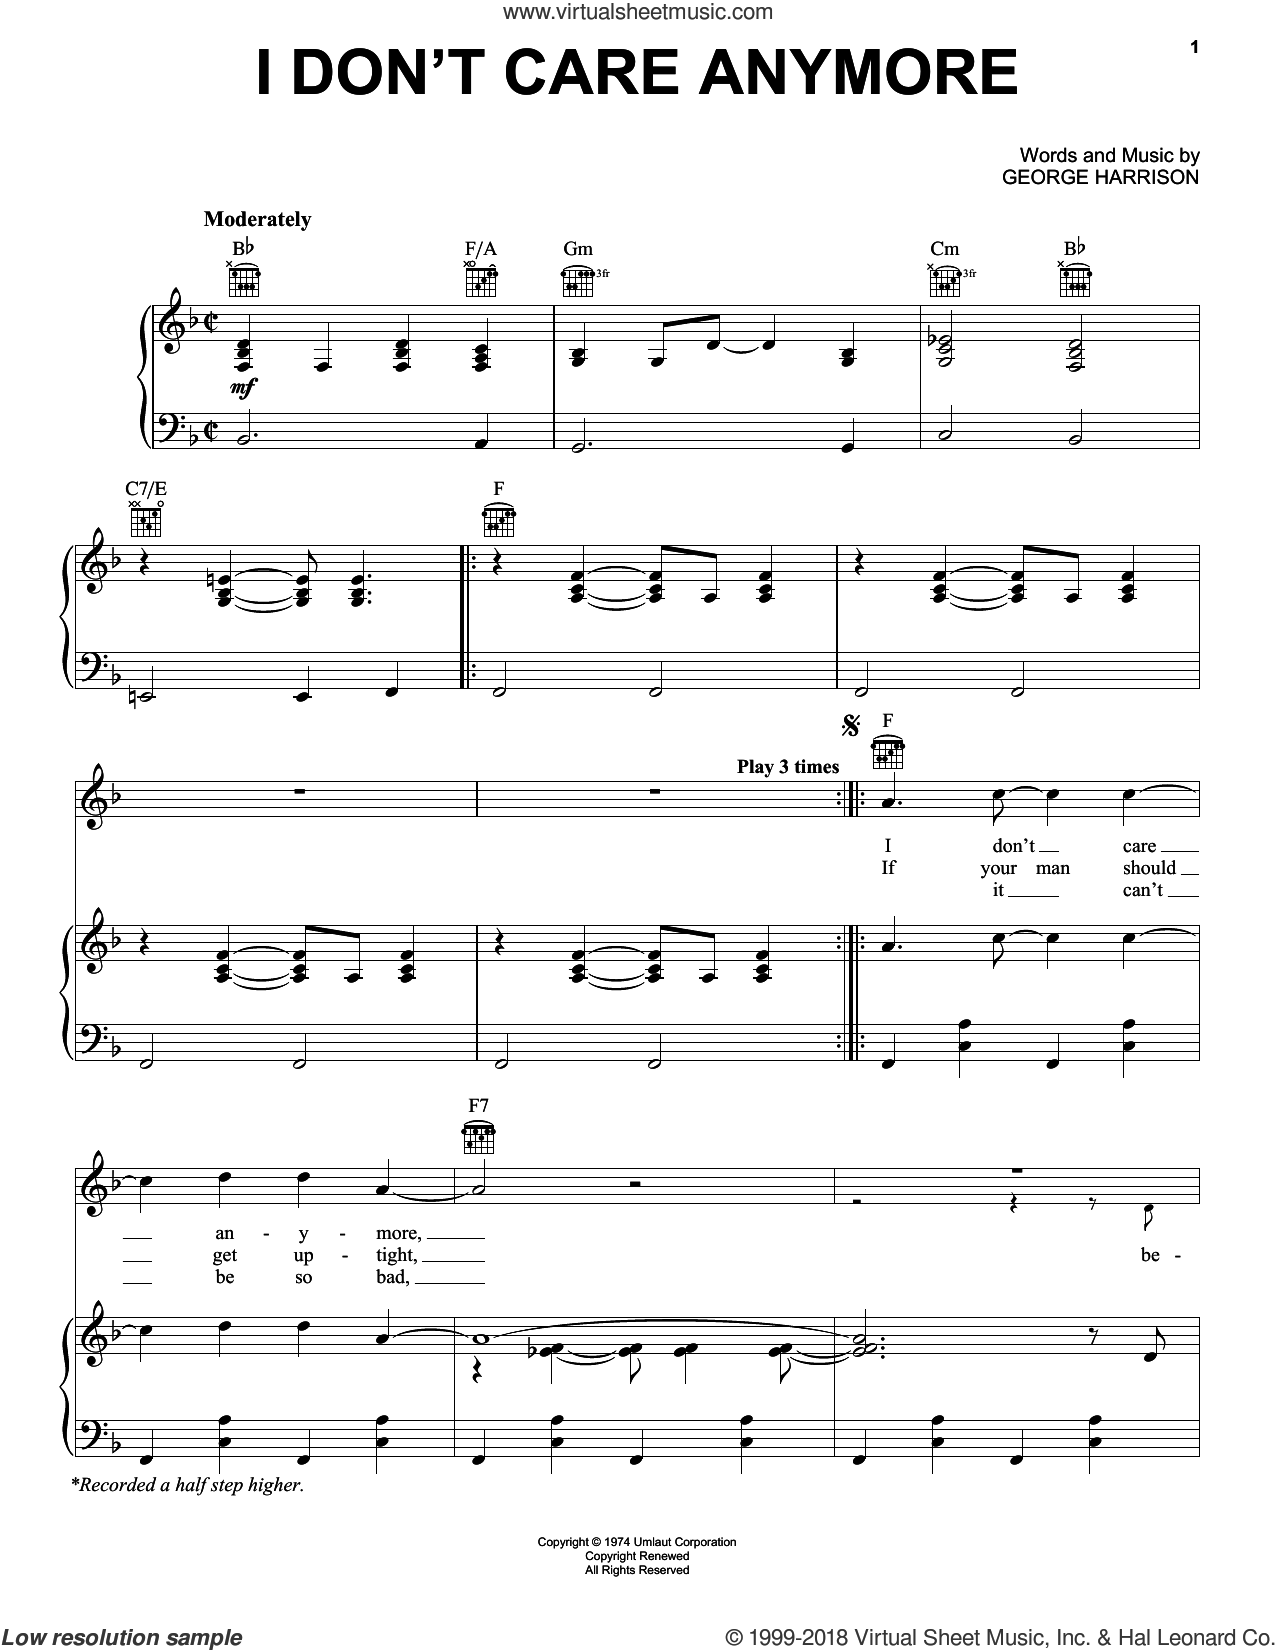 I Don't Care Anymore sheet music for voice, piano or guitar by George Harrison, intermediate skill level